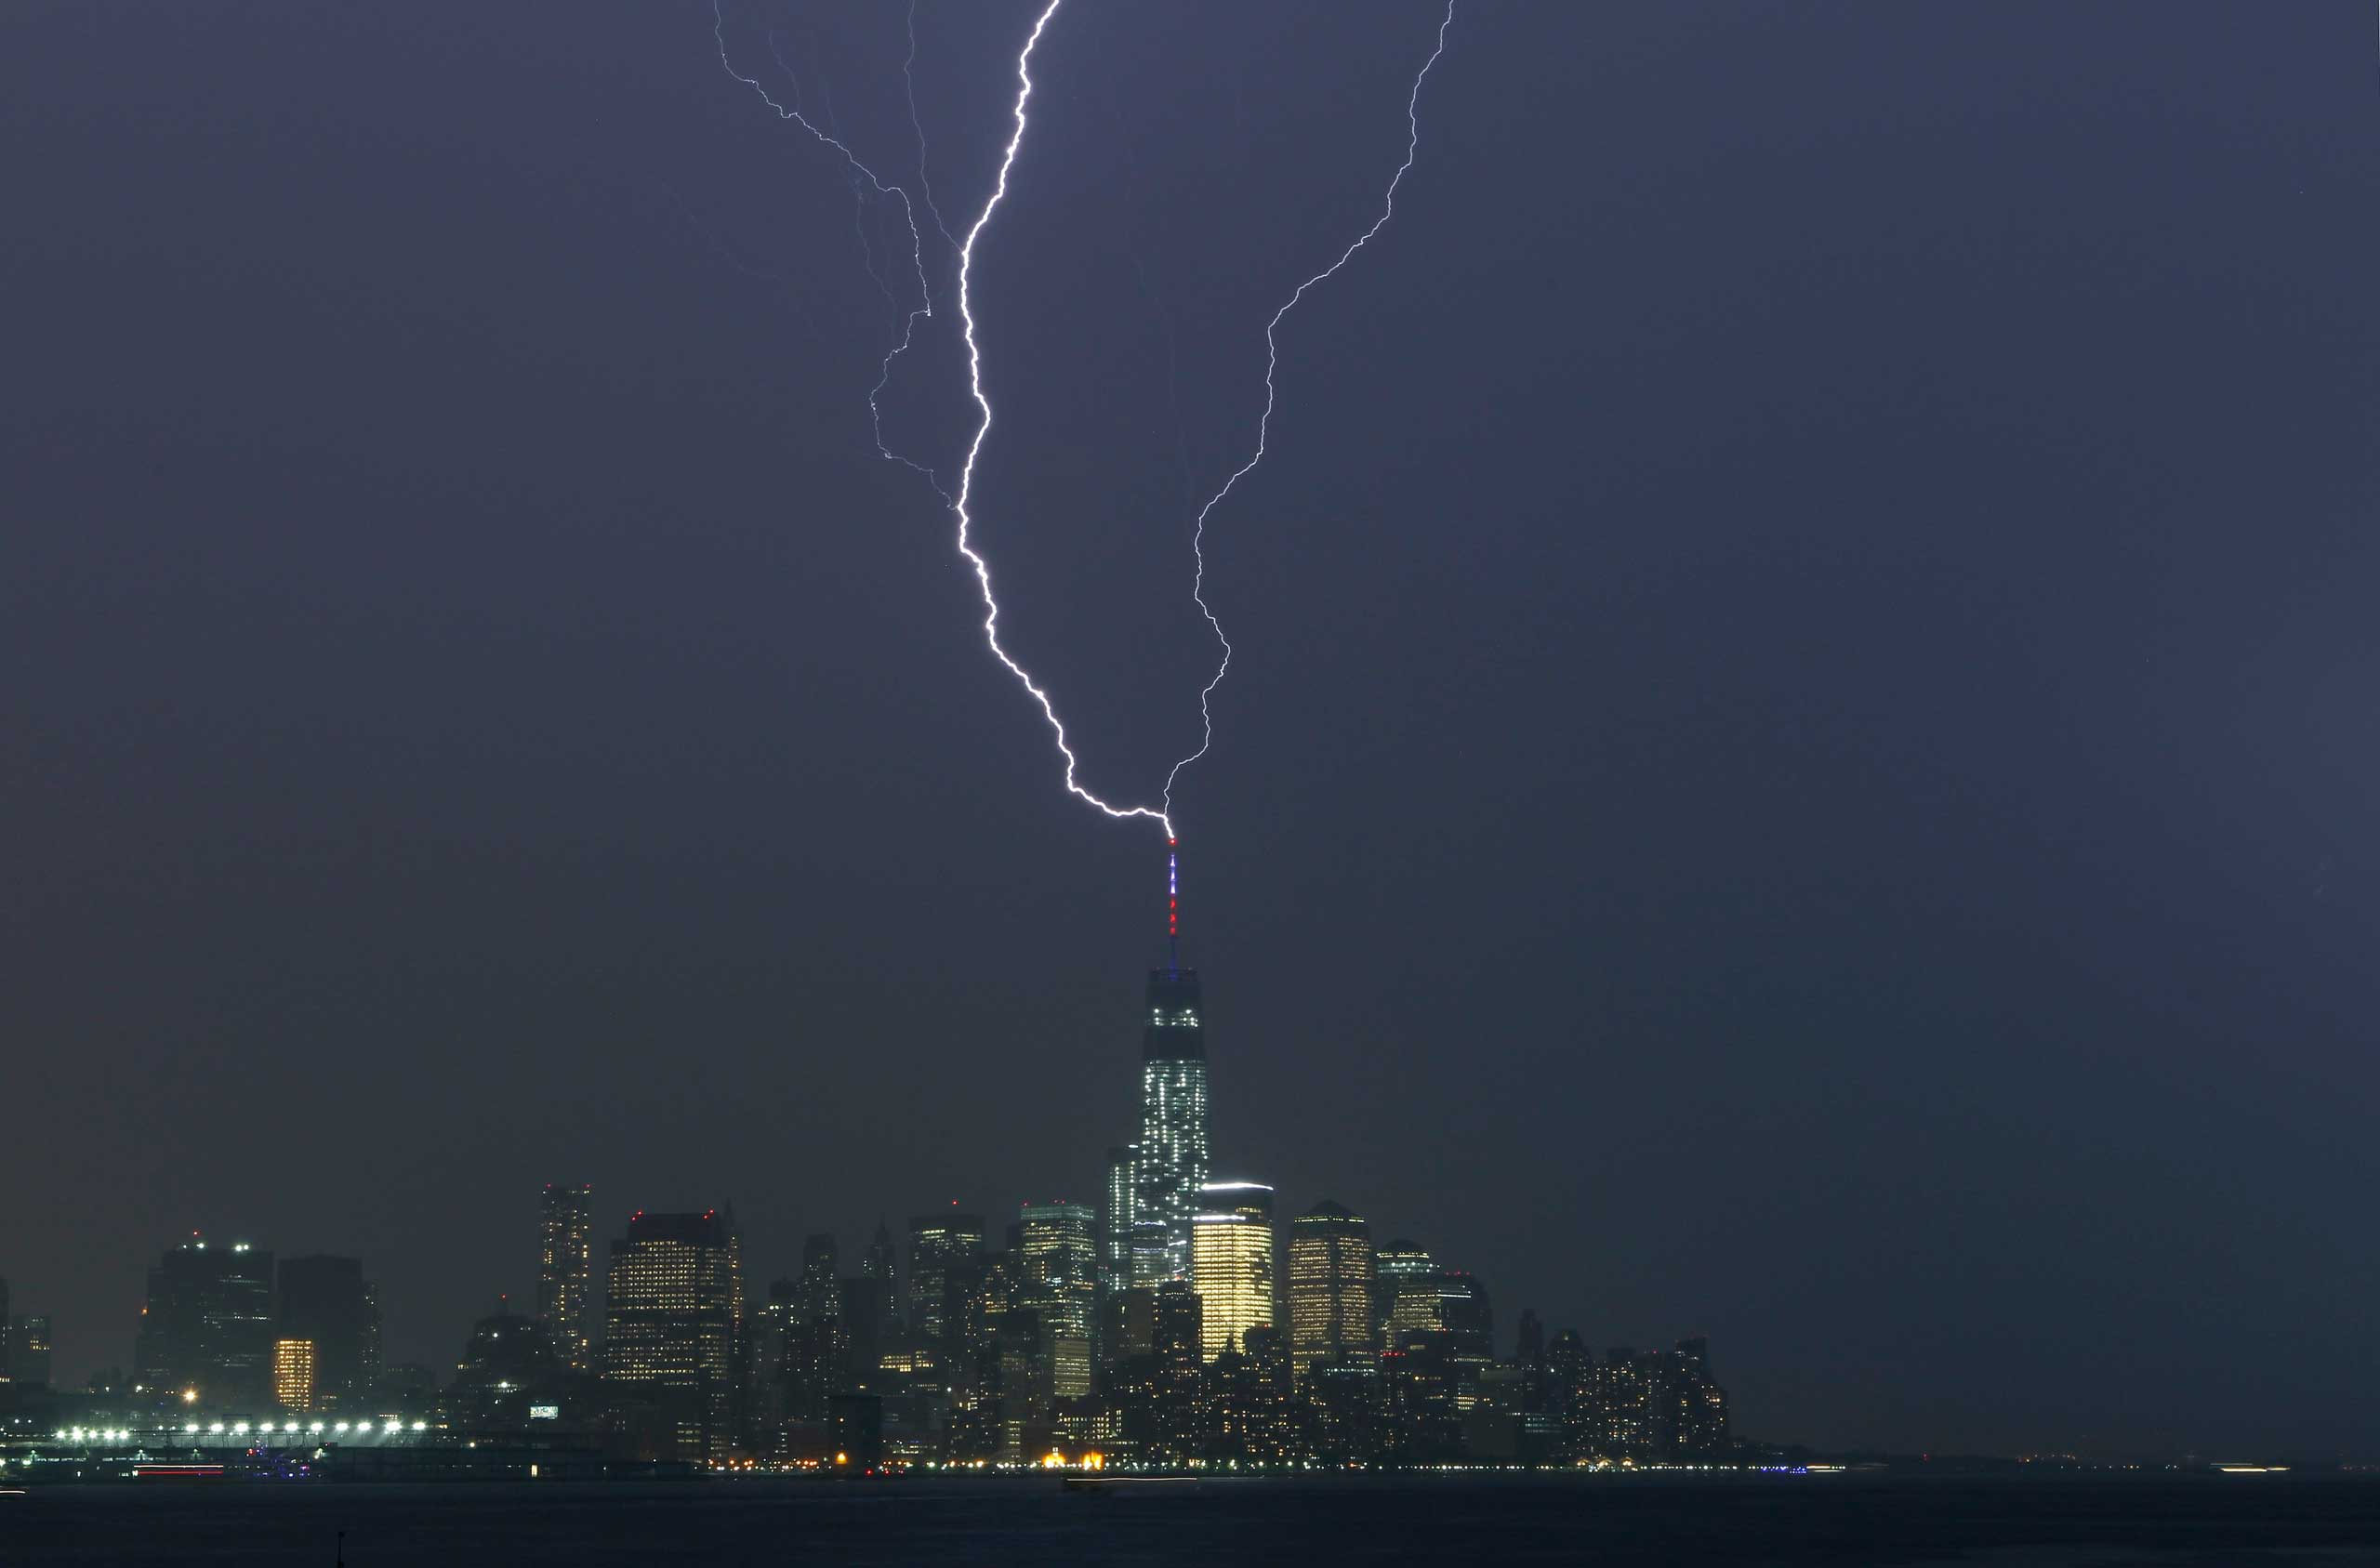 <b>Lightning Hits One World Trade Center</b> Two bolts of lightning hit the antenna on top of One World Trade Center in Lower Manhattan, New York City on May 23, 2014.